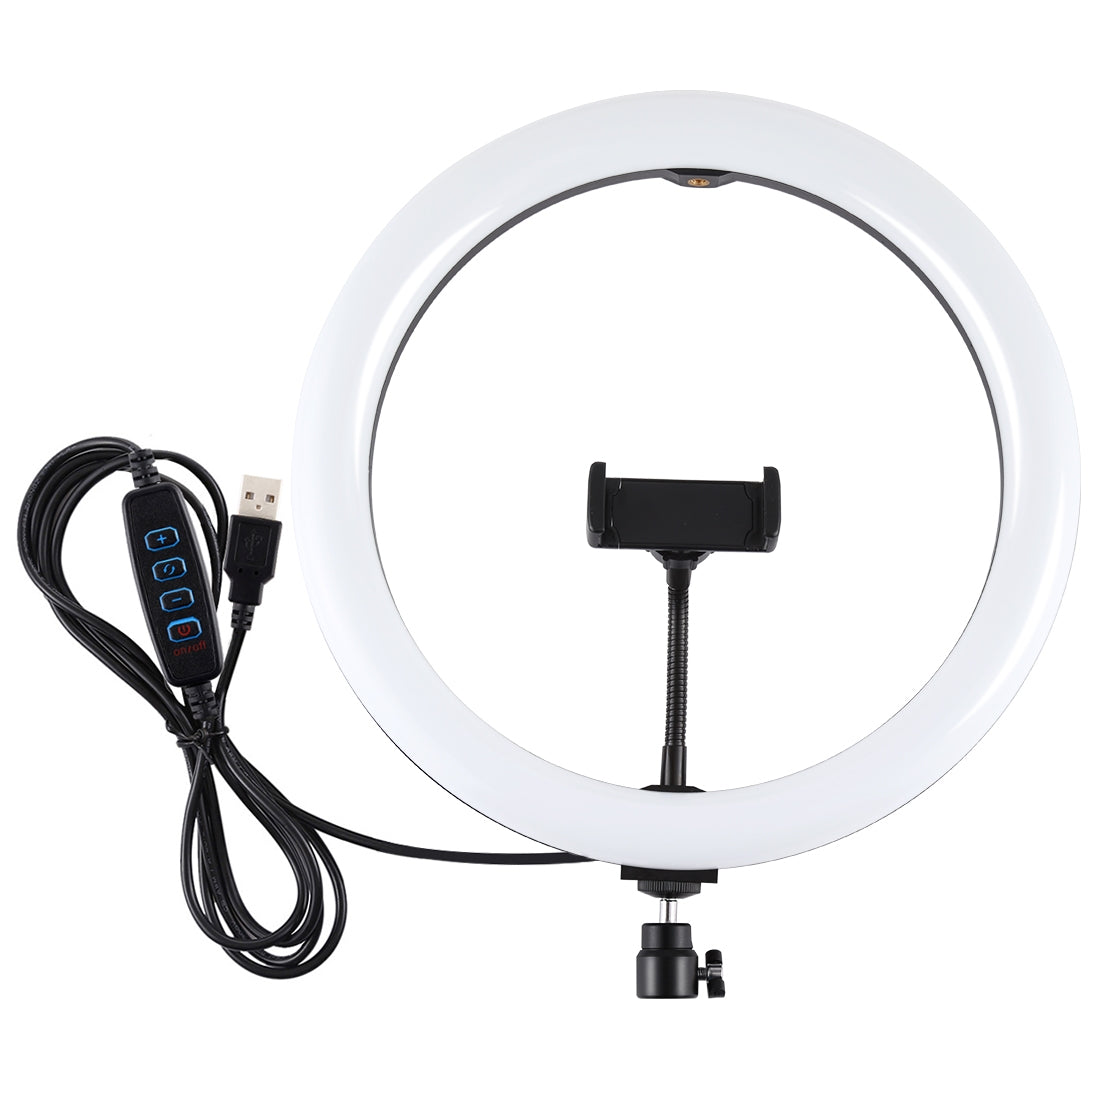 11.8 inch 30cm USB 3 Modes Dimmable Dual Color Temperature LED Curved Diffuse Light Ring Vlogging Selfie Photography Video Lights